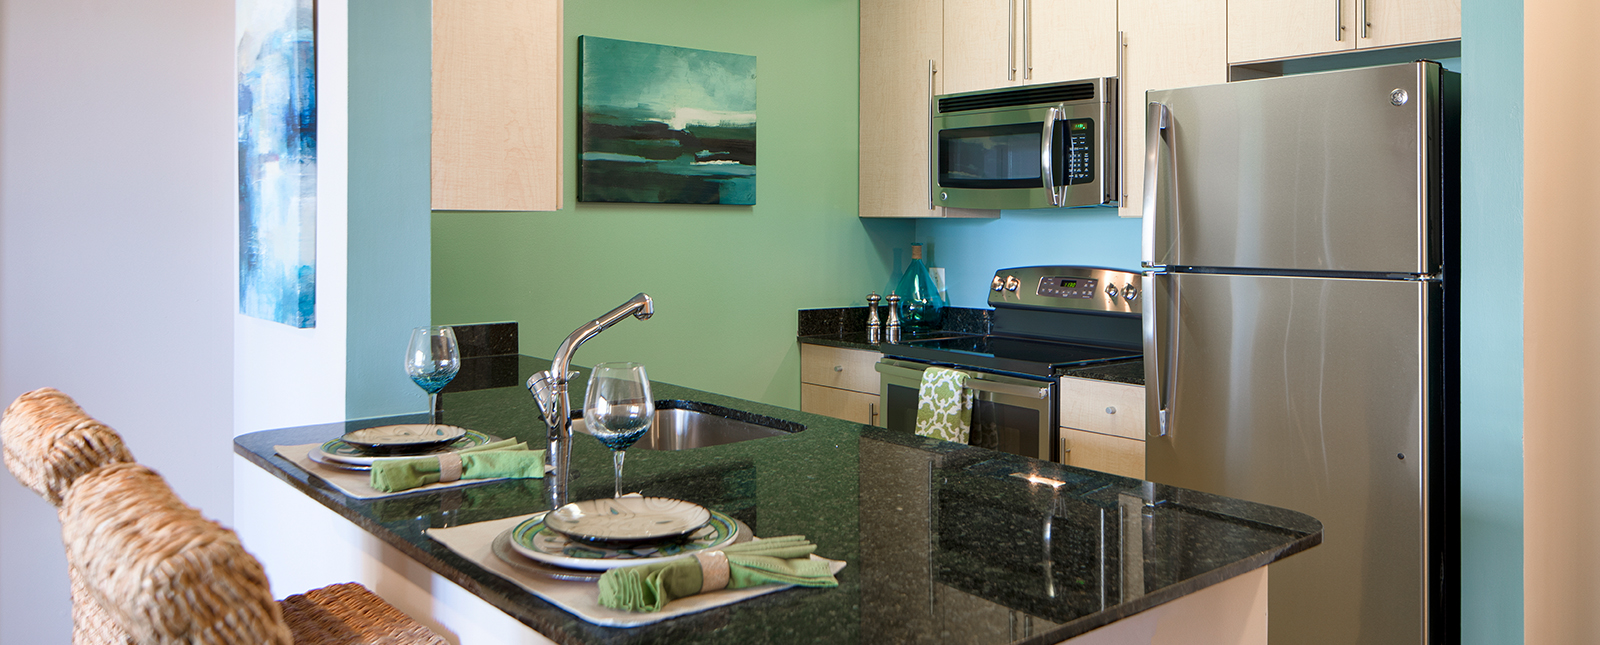 Oven at Spinnaker Bay Serviced Apartments